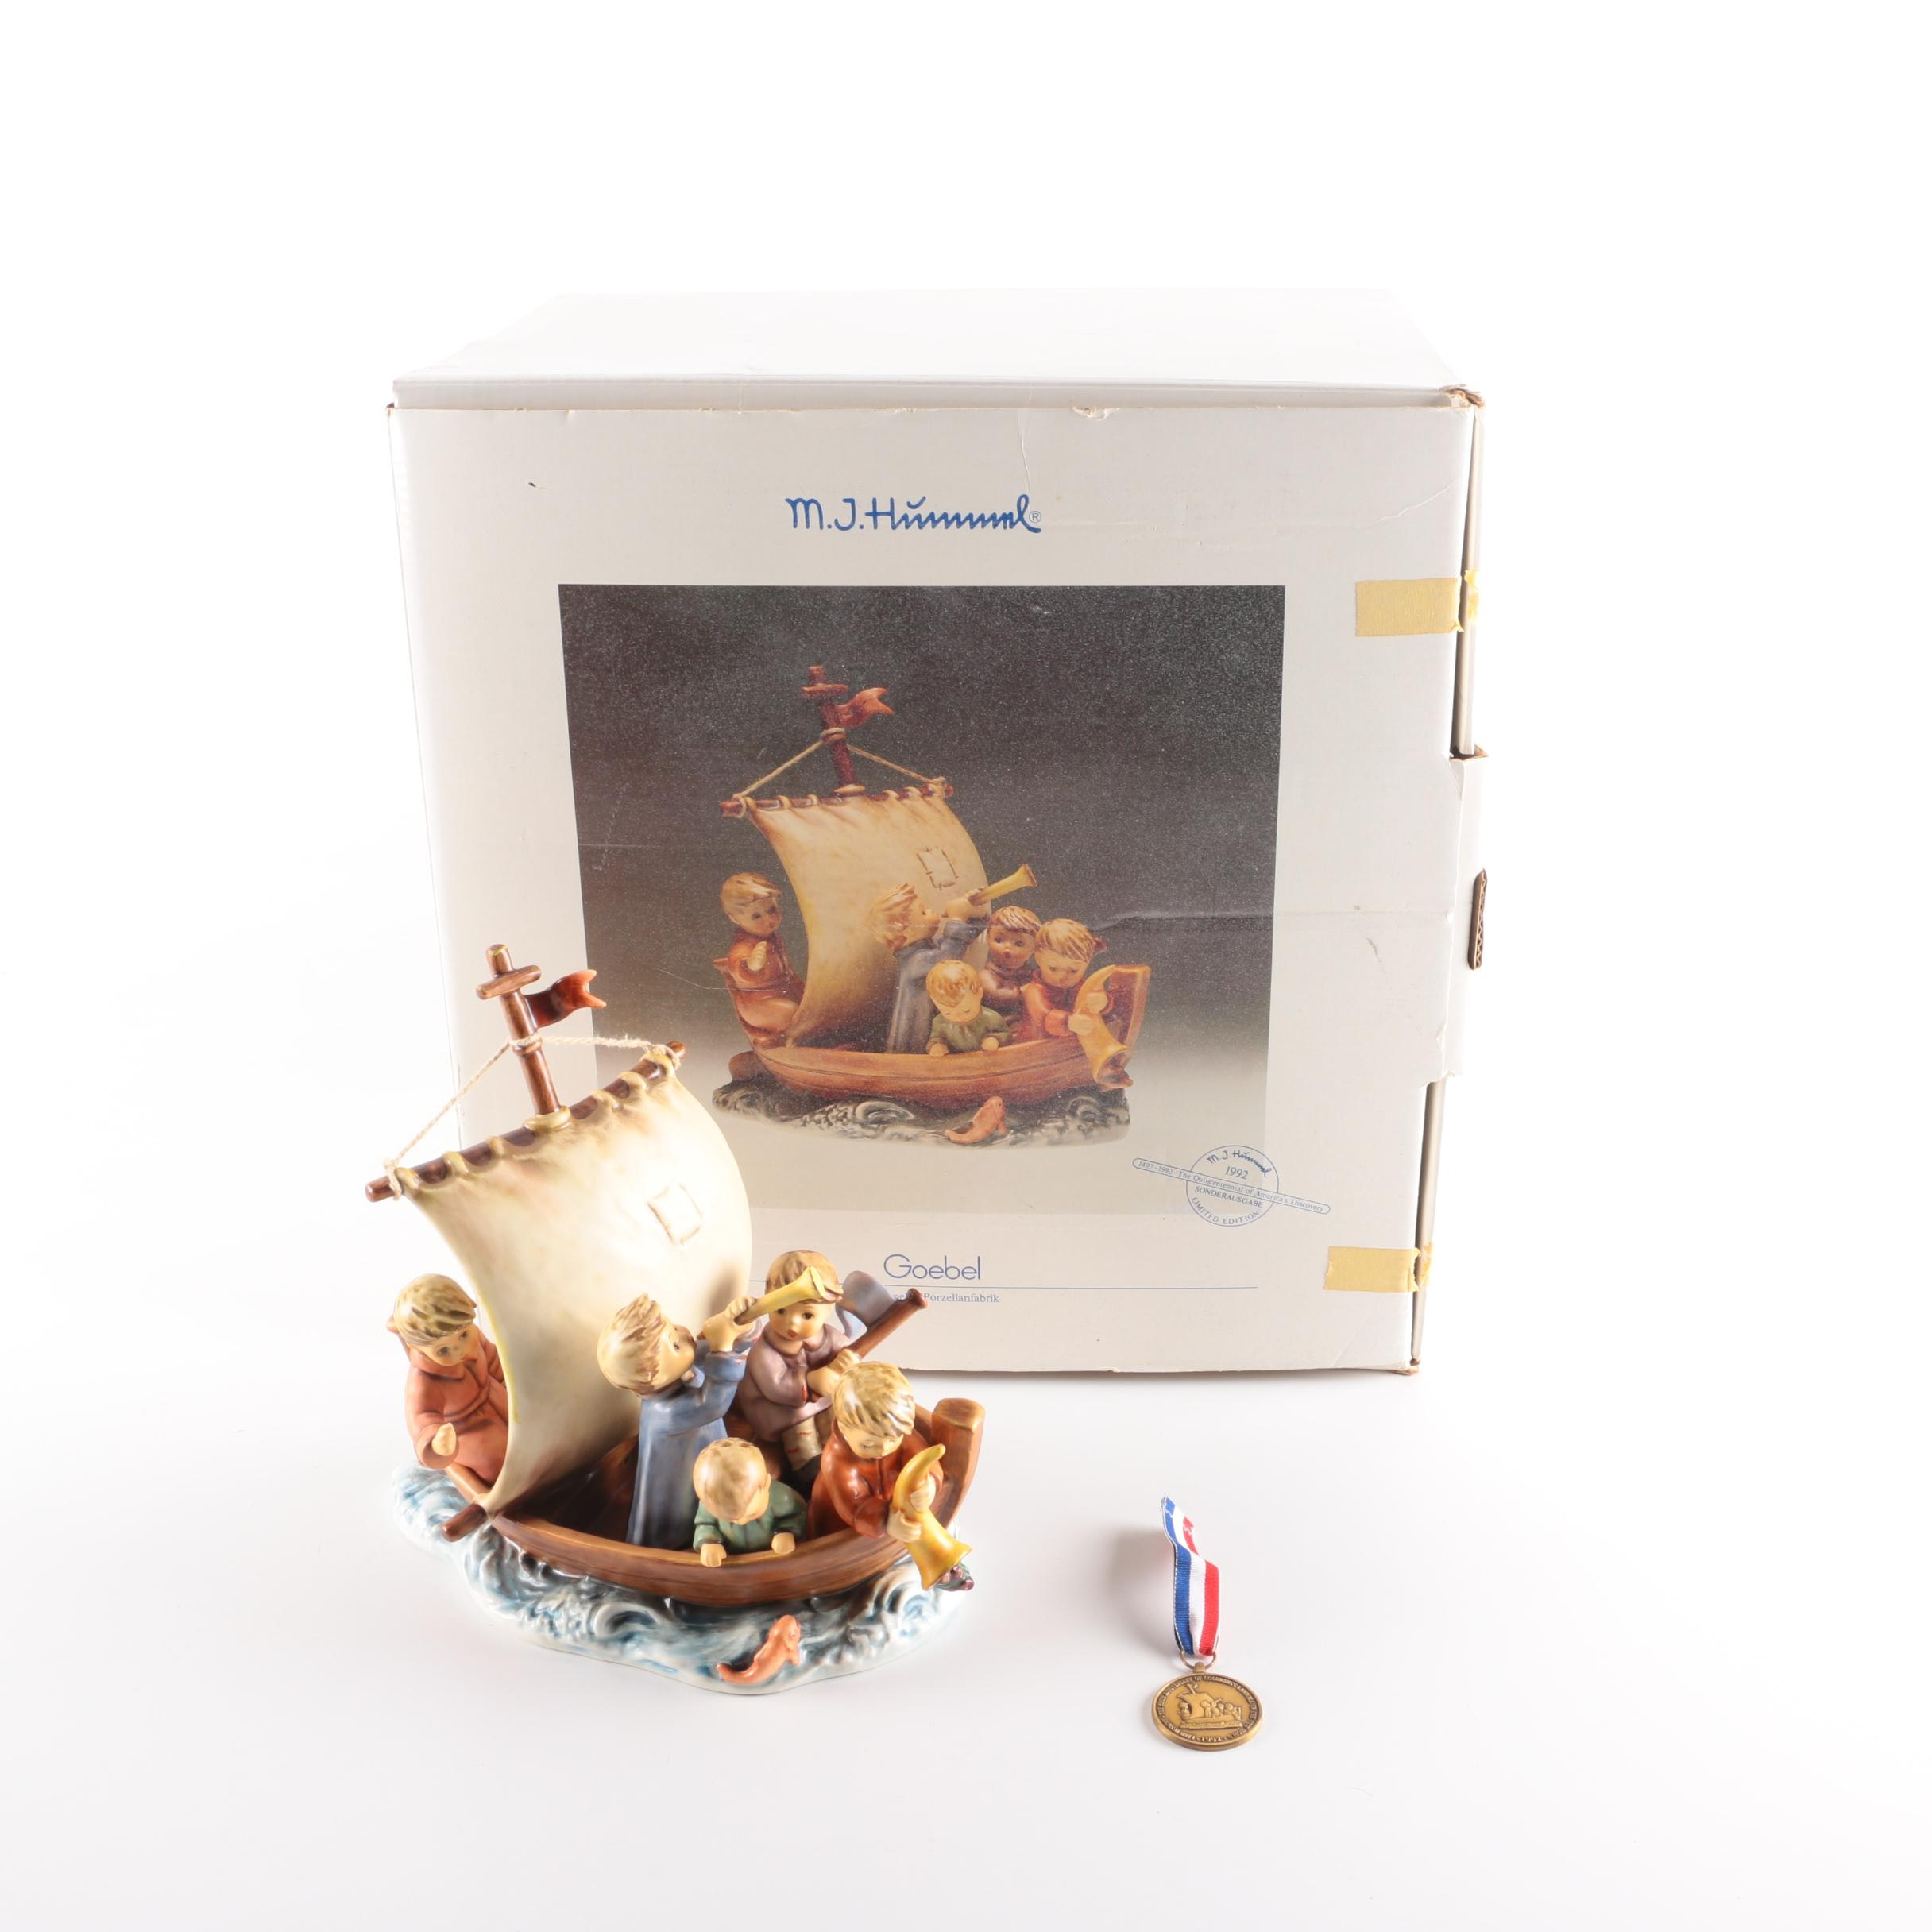 """M.I. Hummel """"Land in Sight"""" Limited Edition Figurine and Medal"""